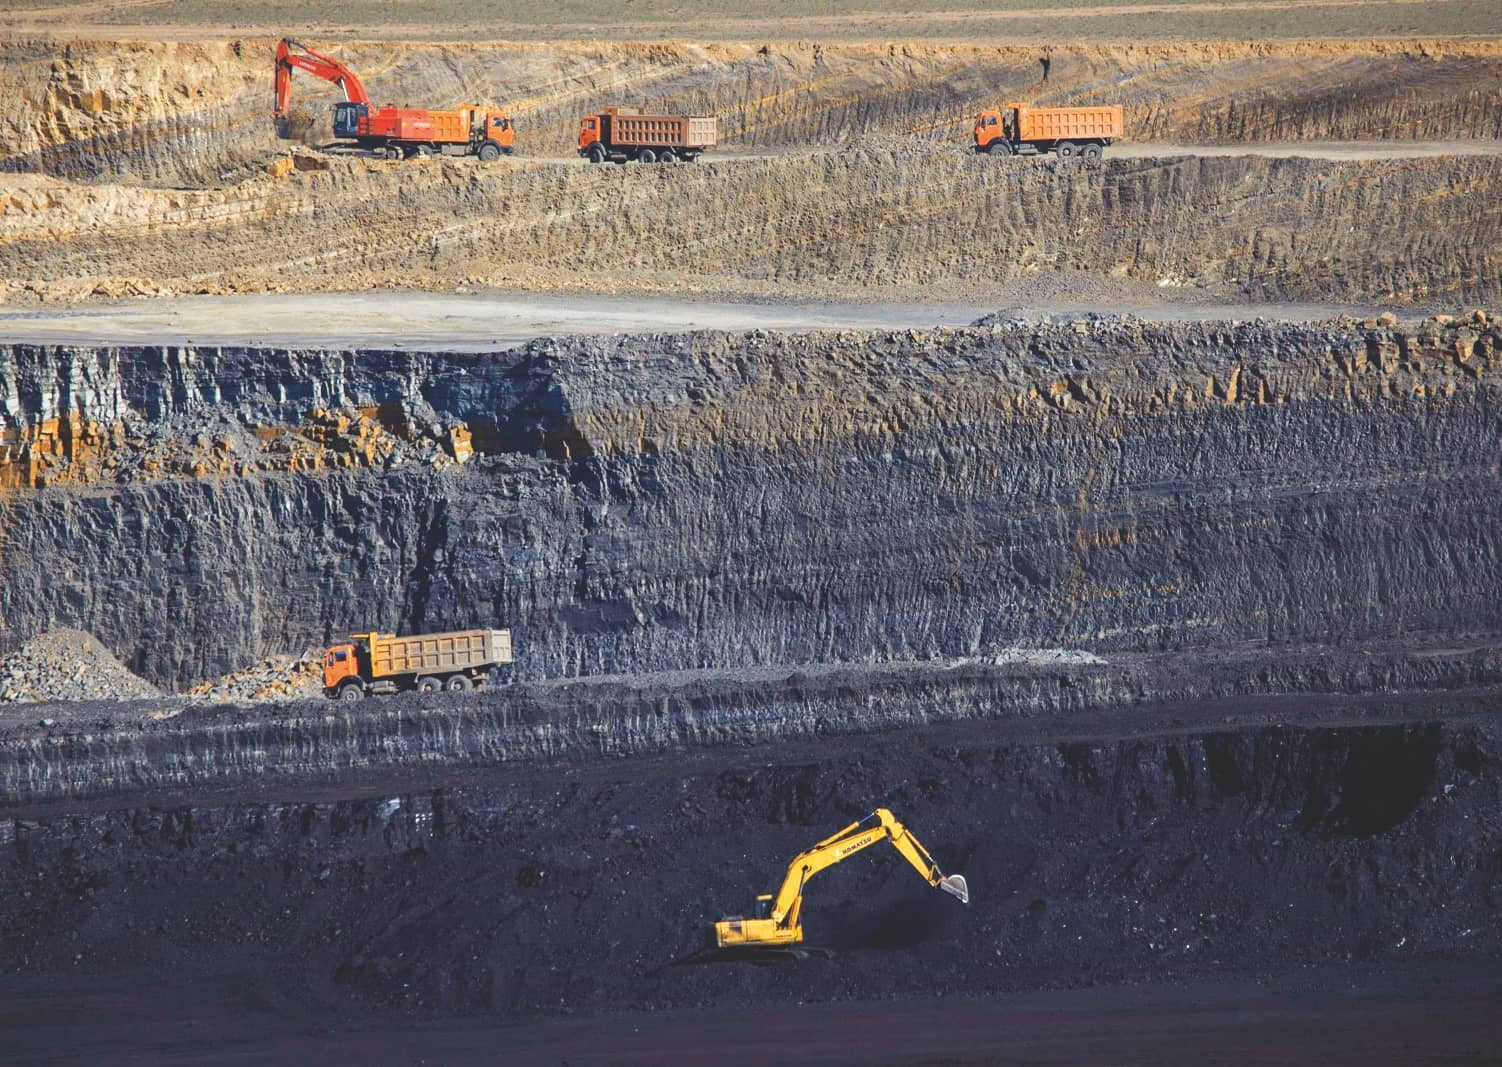 GOVT TO INVEST RS 1 LAKH CRORE TO RAMP UP COAL PRODUCTION